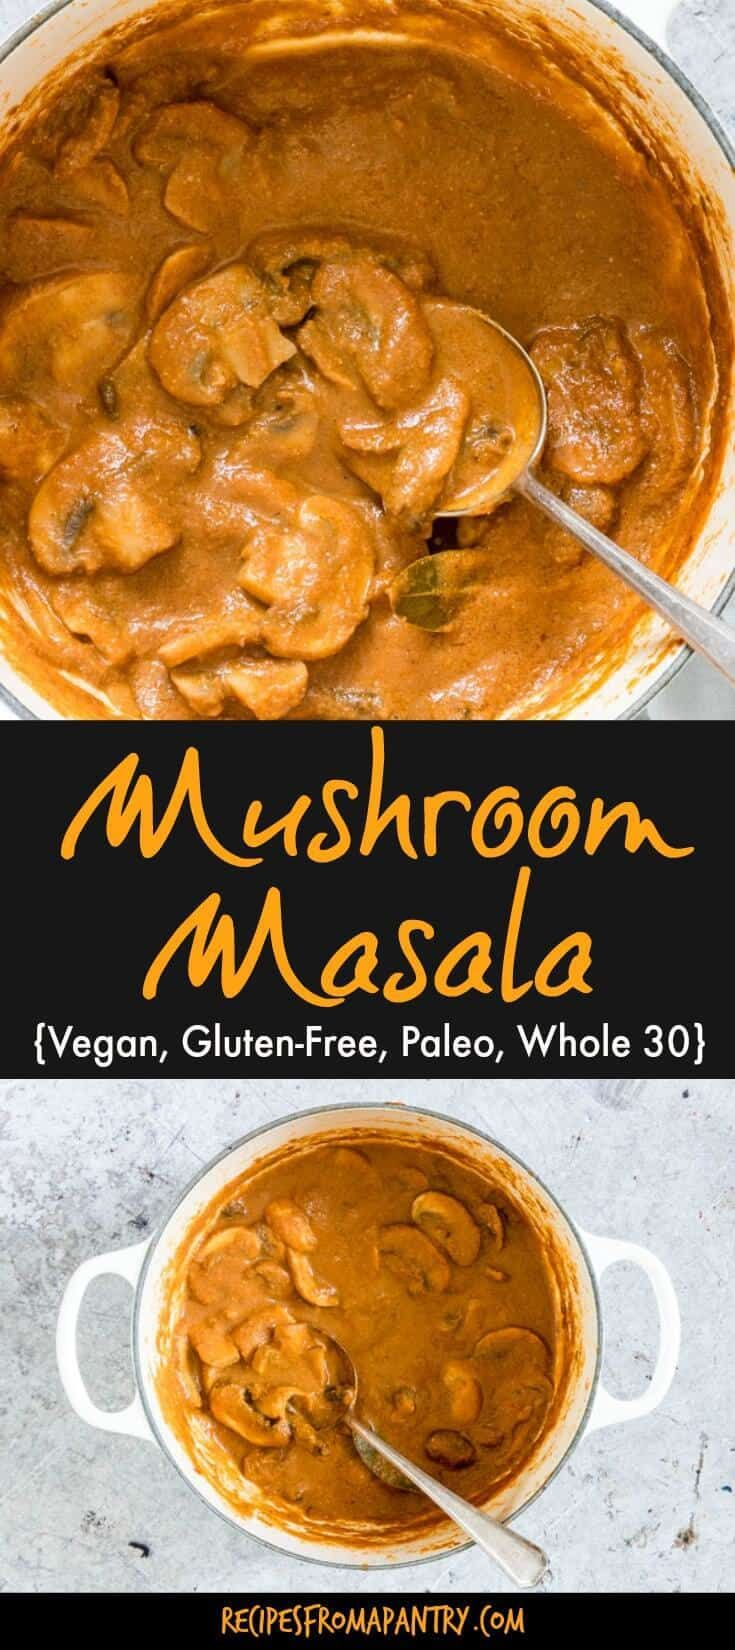 Mushroom Masala (Mushroom Masala gravy, Mushroom Masala curry) is a classic Indian recipe that is flavourful and warming. Ready in just about 30 mins and makes for a quick dinner recipe. Vegan, gluten-free, Paleo and Whole 30 compliant. #mushroommasala #mushroommasalarecipes #indian #indianrecipes via @recipespantry